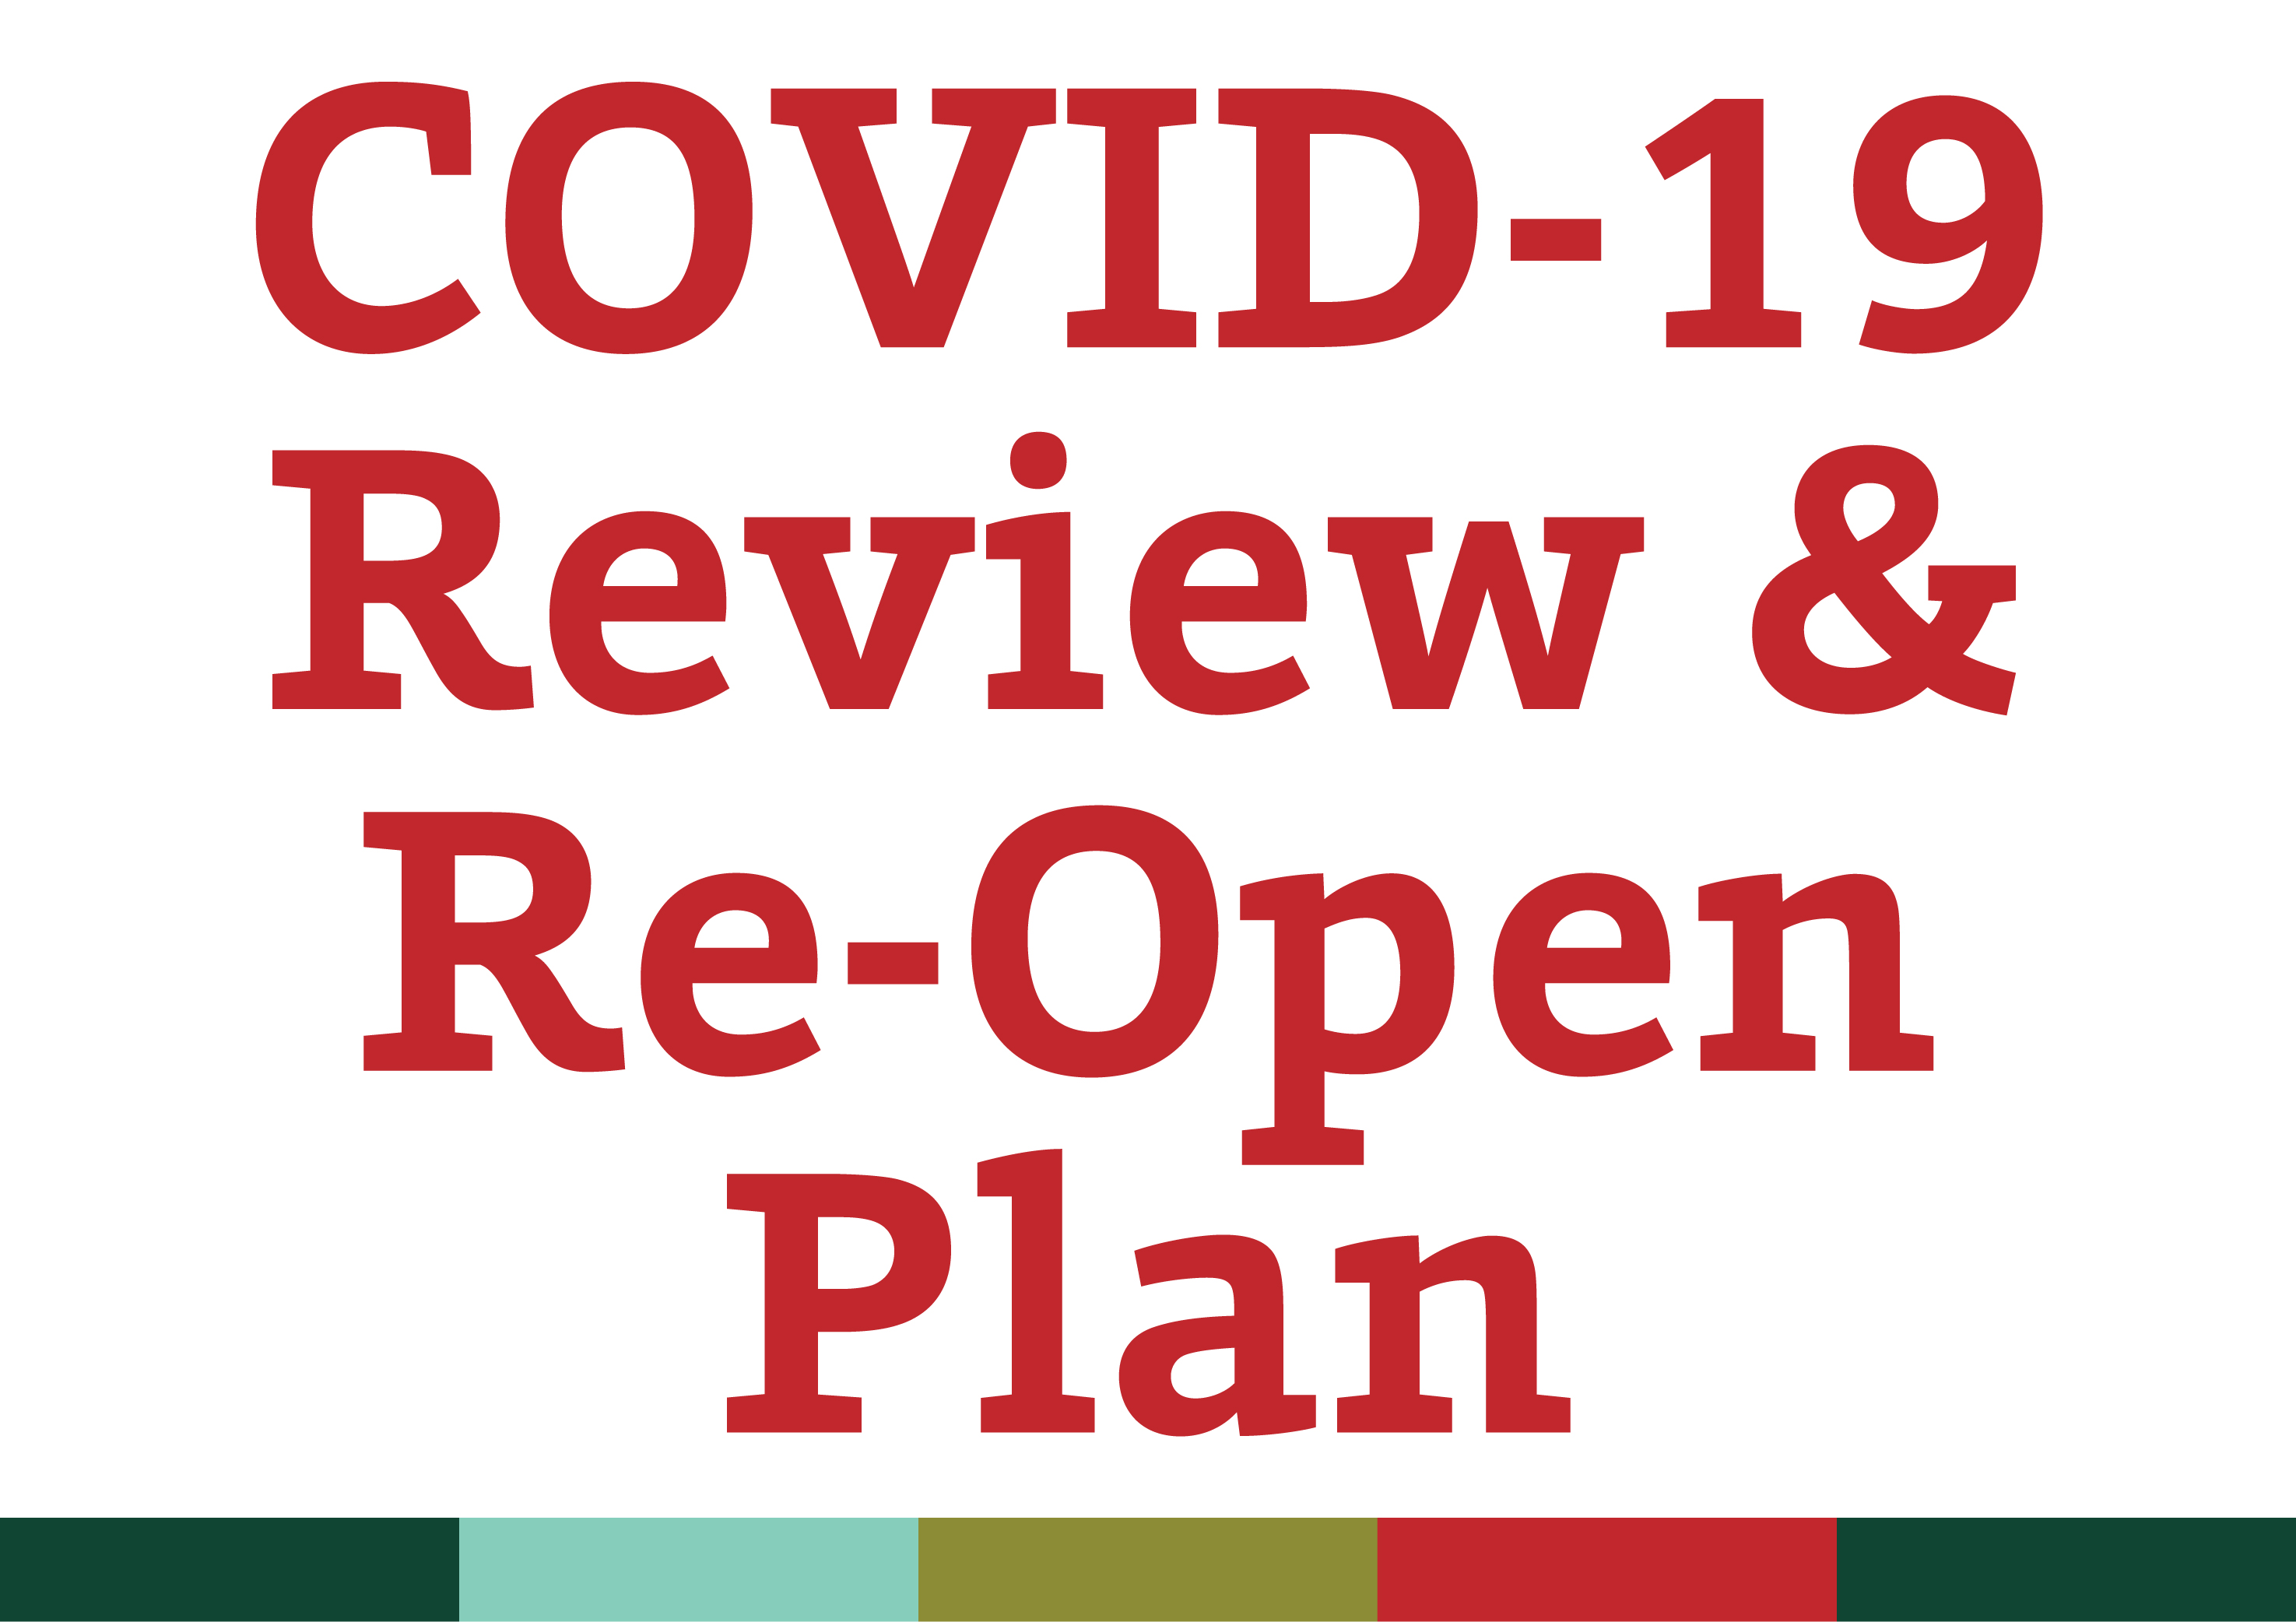 Covid review reopen webslider 01  1